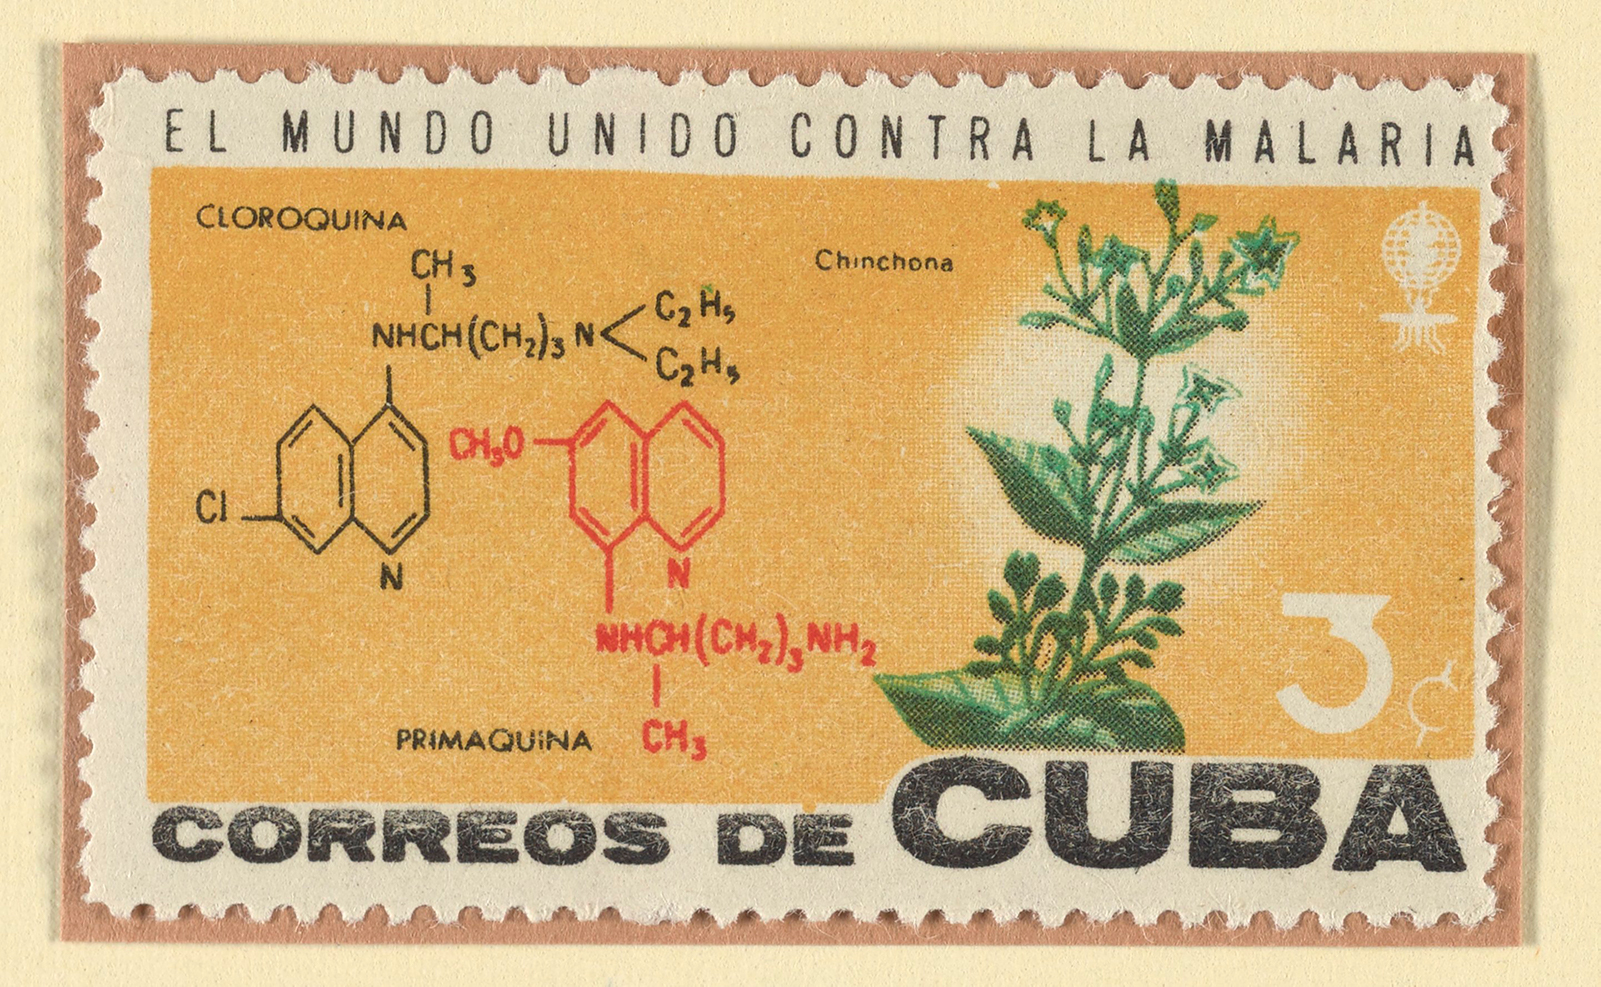 Stamp with illustrations of chemical compounds and a plant